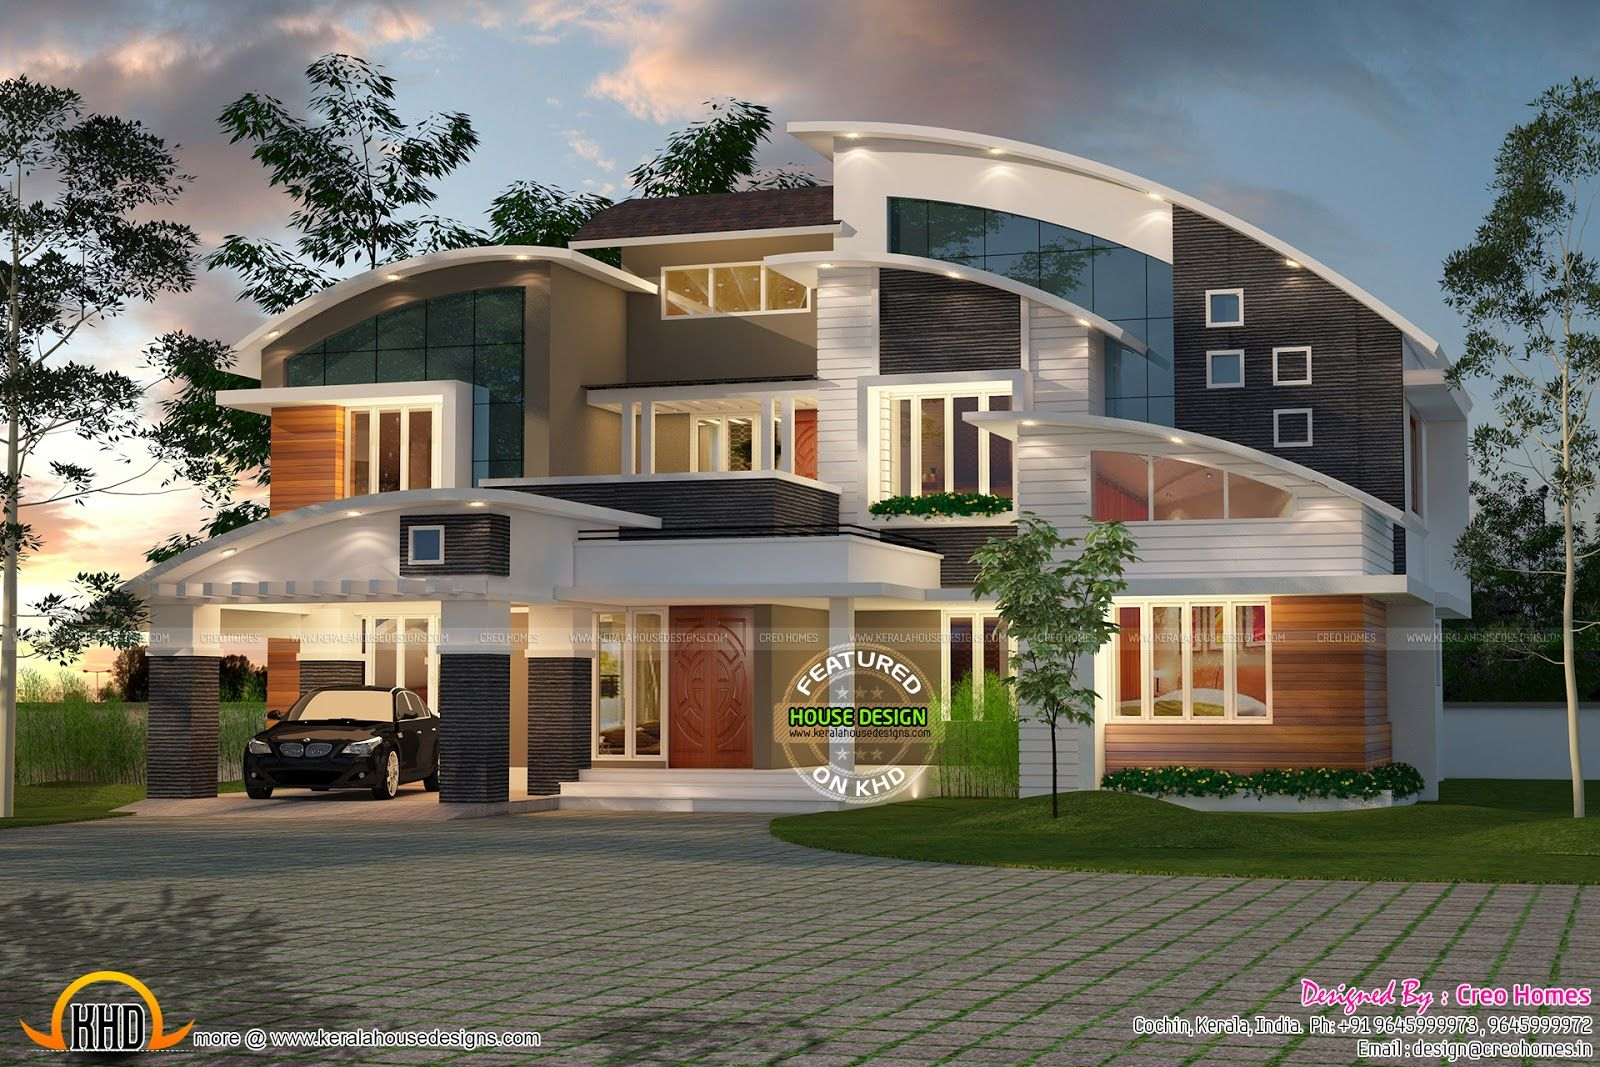 Sloping Roof Contemporary Mix Keralahousedesigns Minecraft House Designs House Architecture Design Luxury Homes Exterior